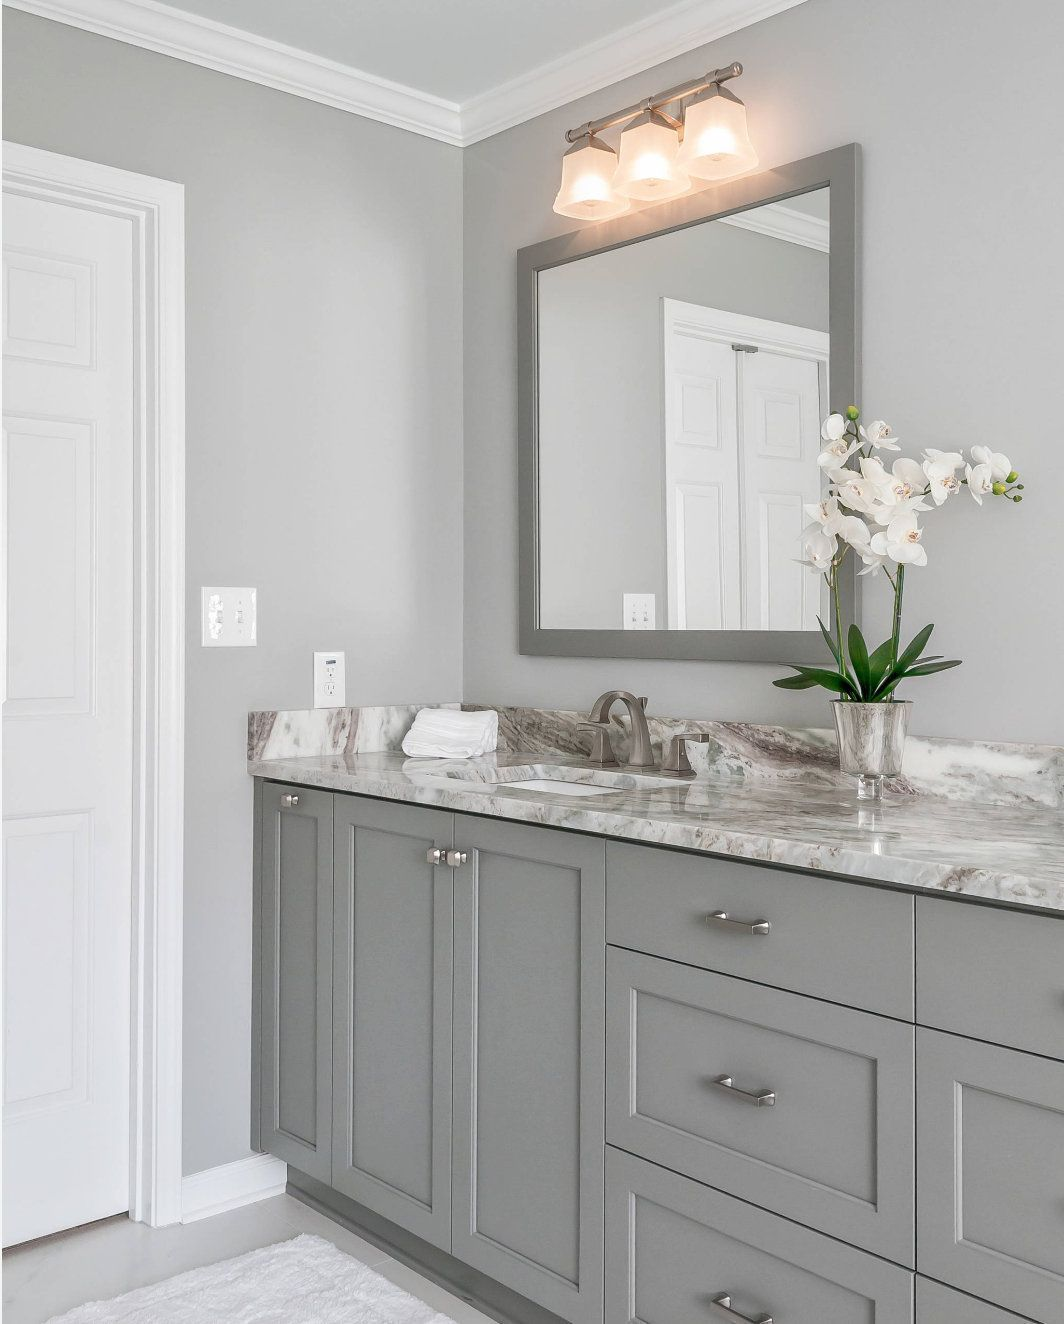 Sherwin Williams Light French Gray: Color headlights #graycabinets